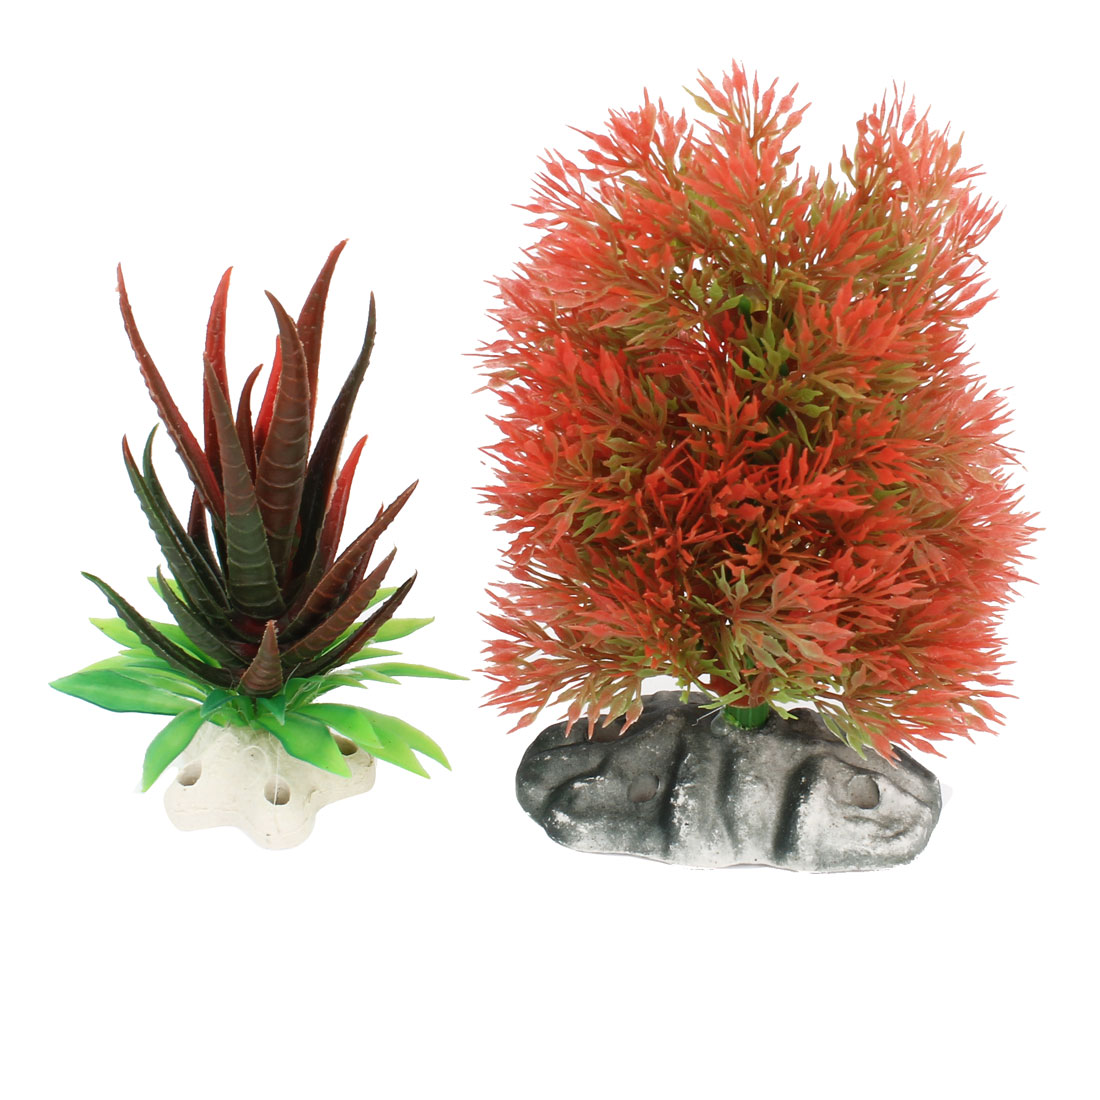 2 Pcs Red Green Plastic Tree Grass Underwater Plants Ornament for Aquarium